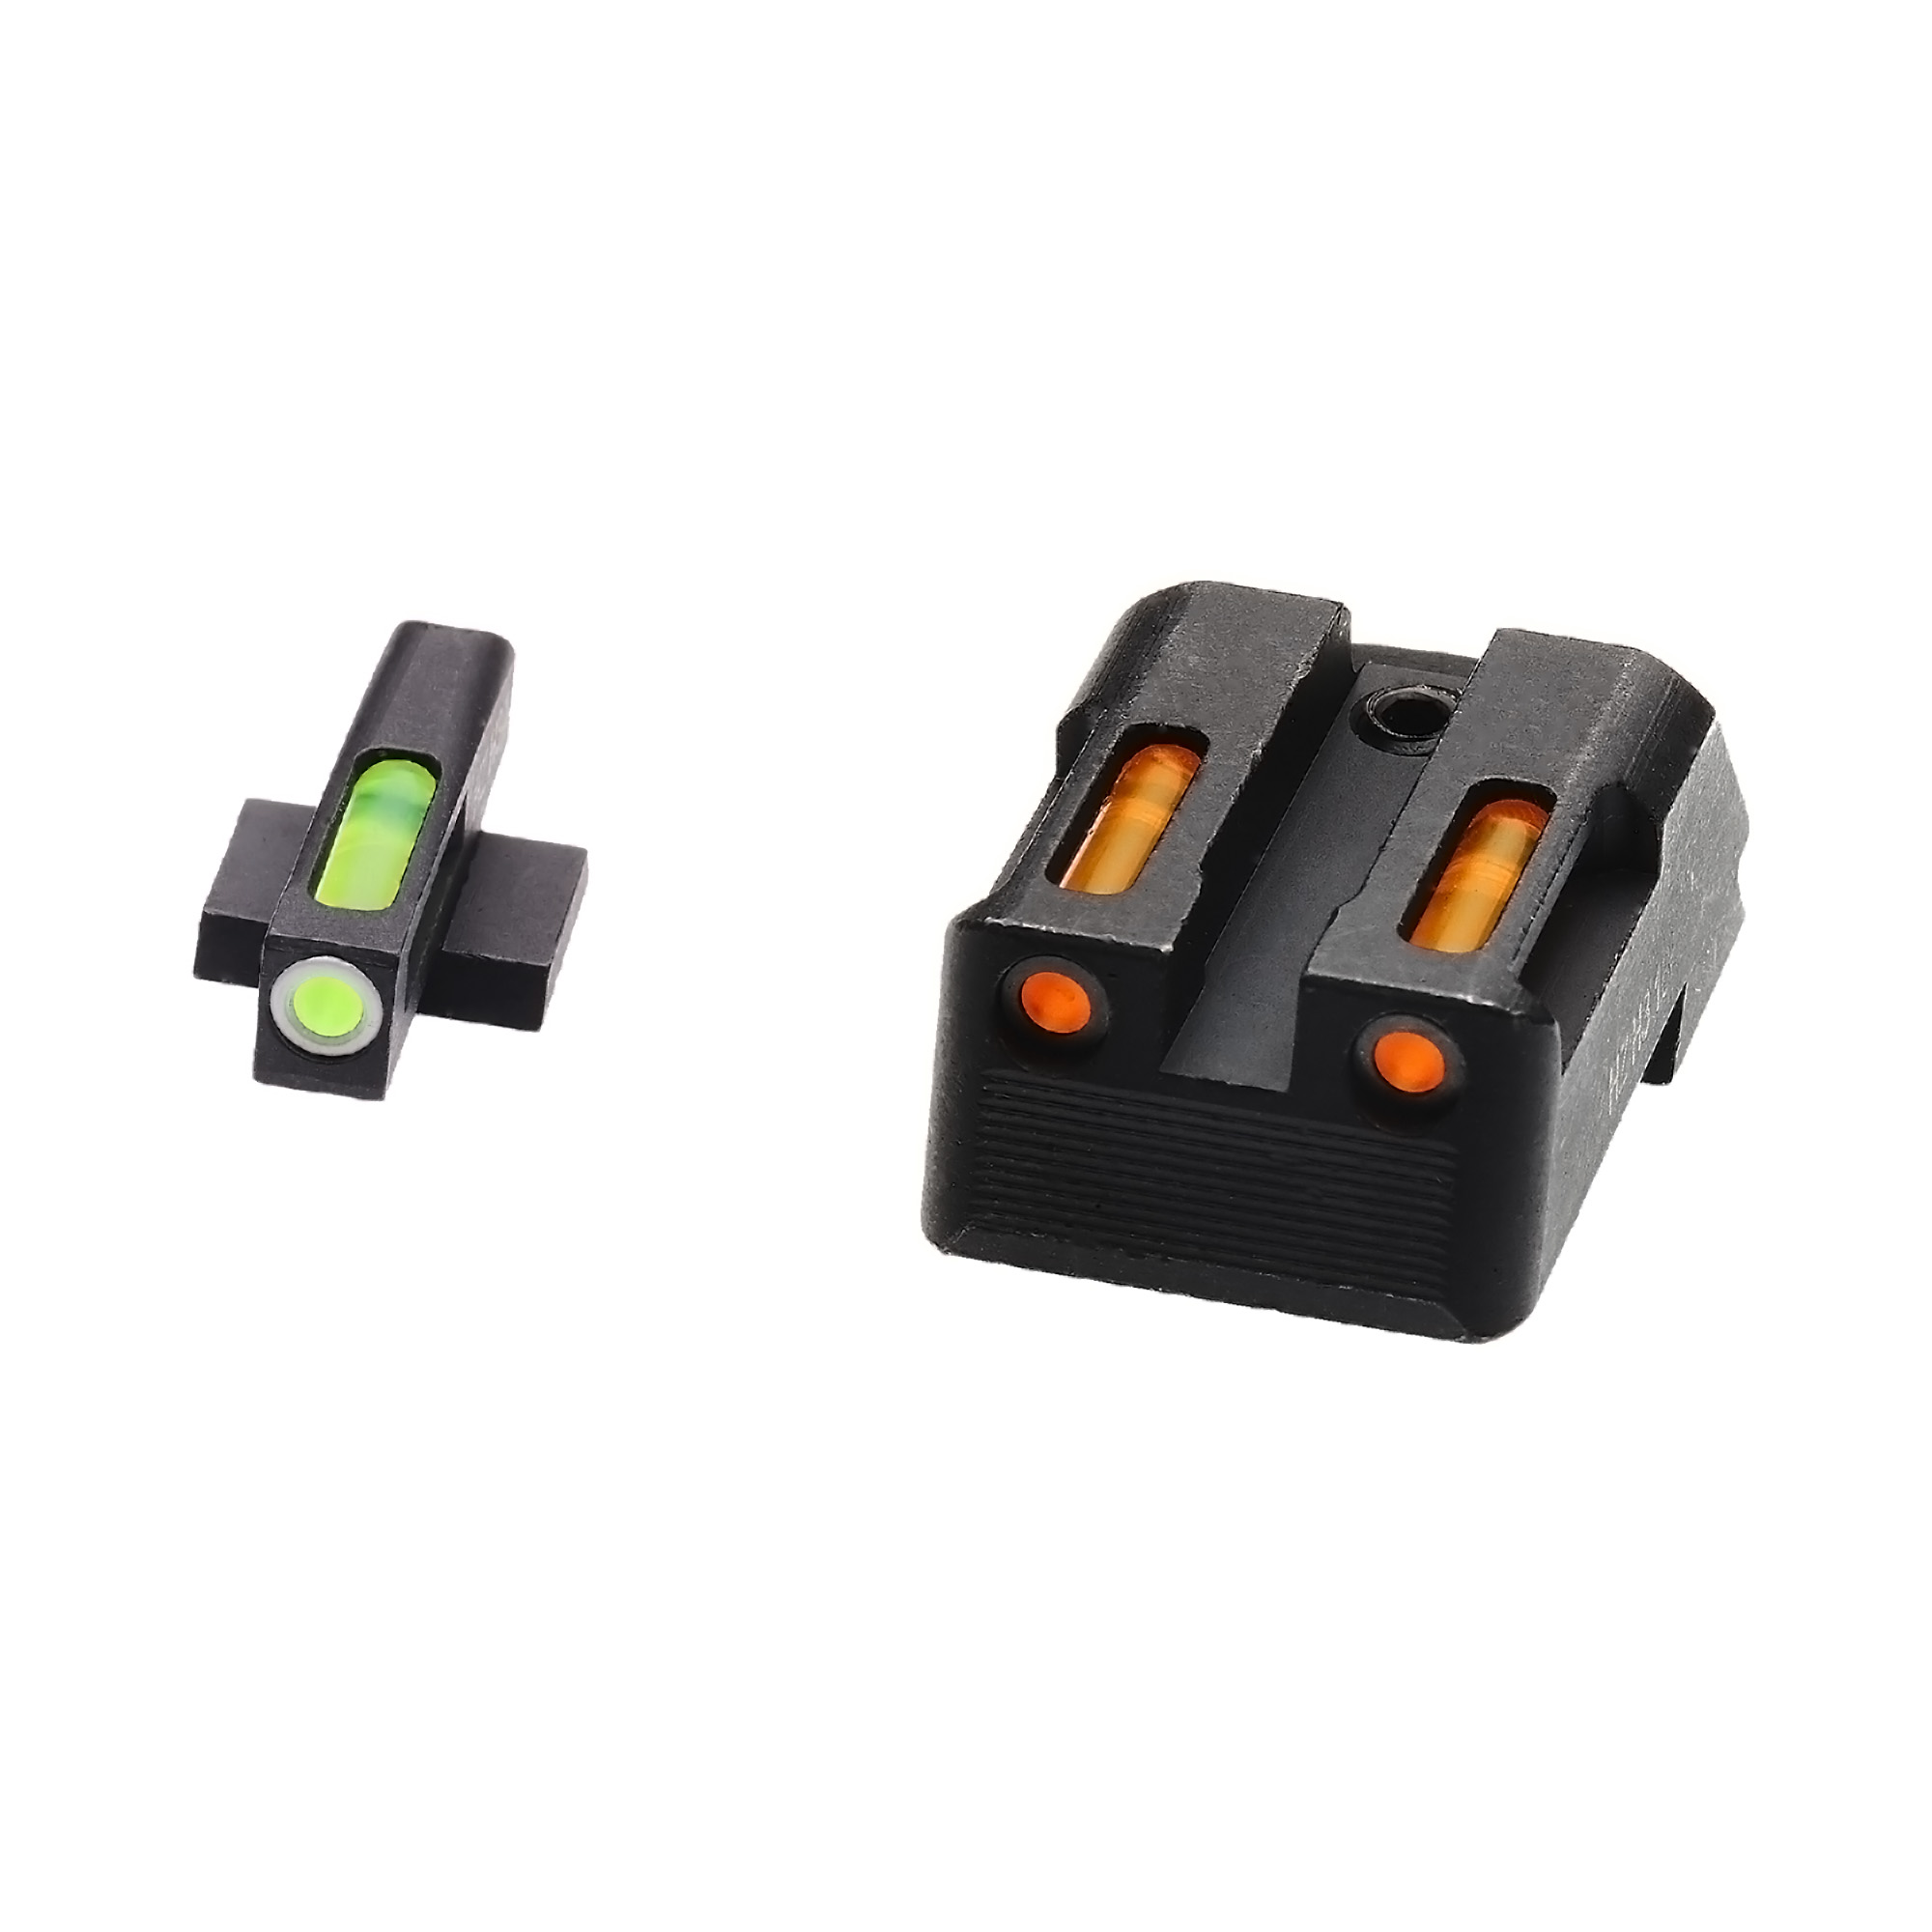 HiViz Litewave H3 Tritium/Litepipe fits Kimber 1911 Models Green Front Sight with White Front Ring/Orange Rear Sight